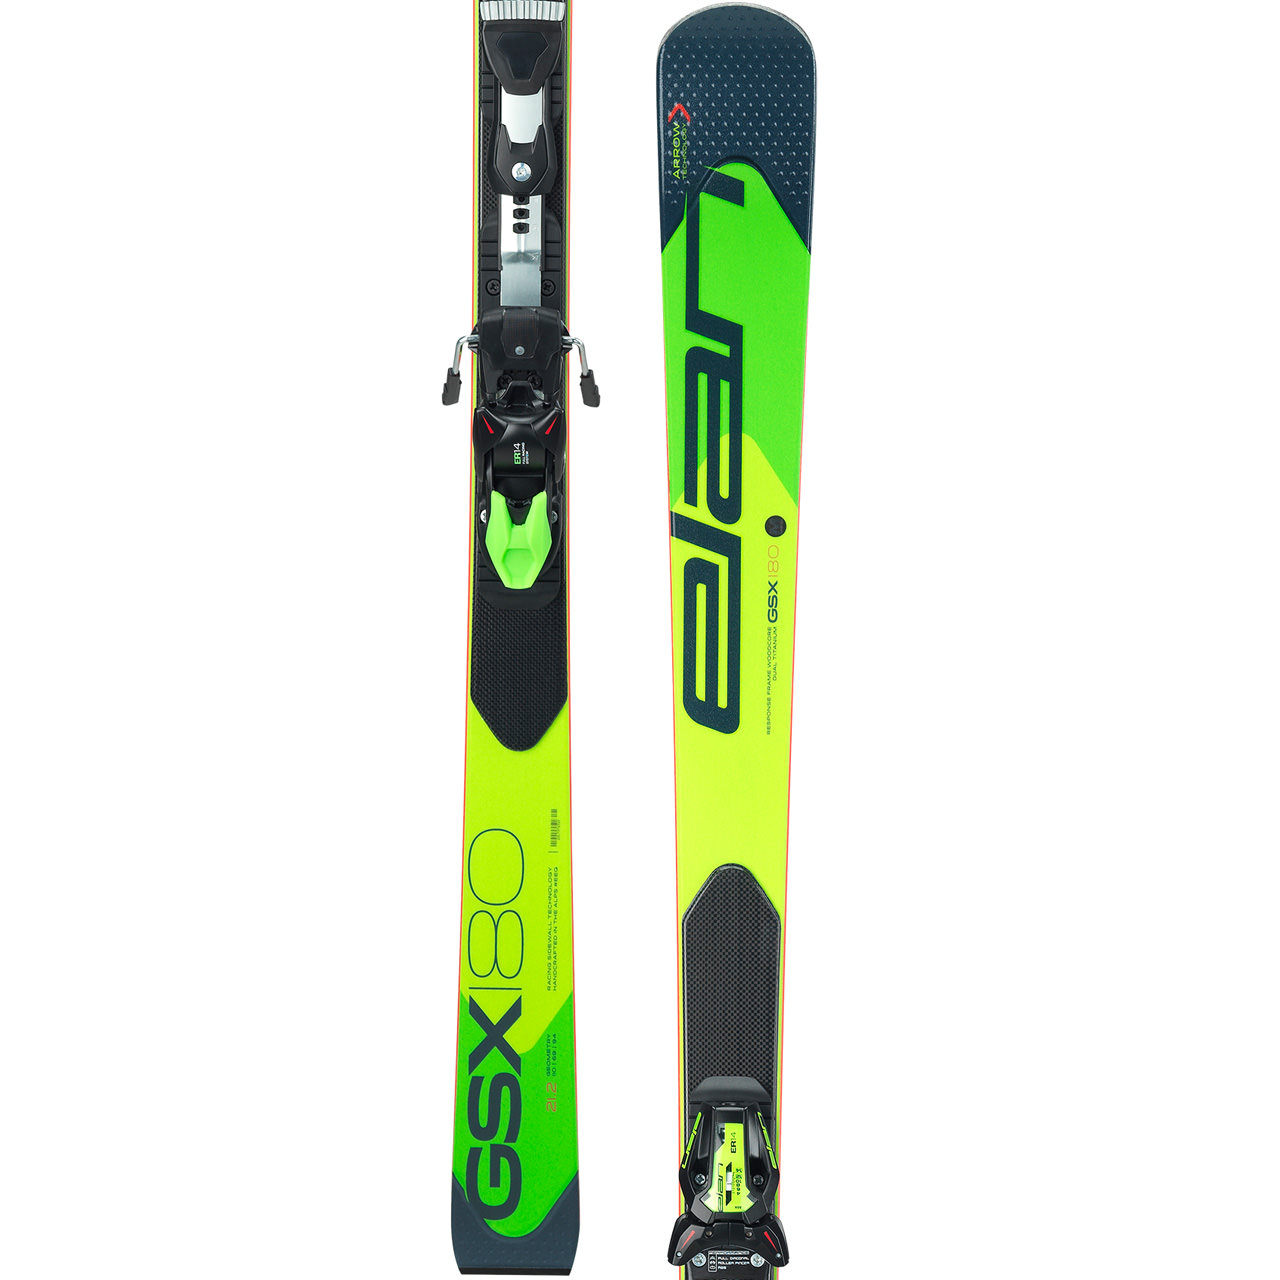 963da8a7c Buy Elan skis / skis at the online ski shop